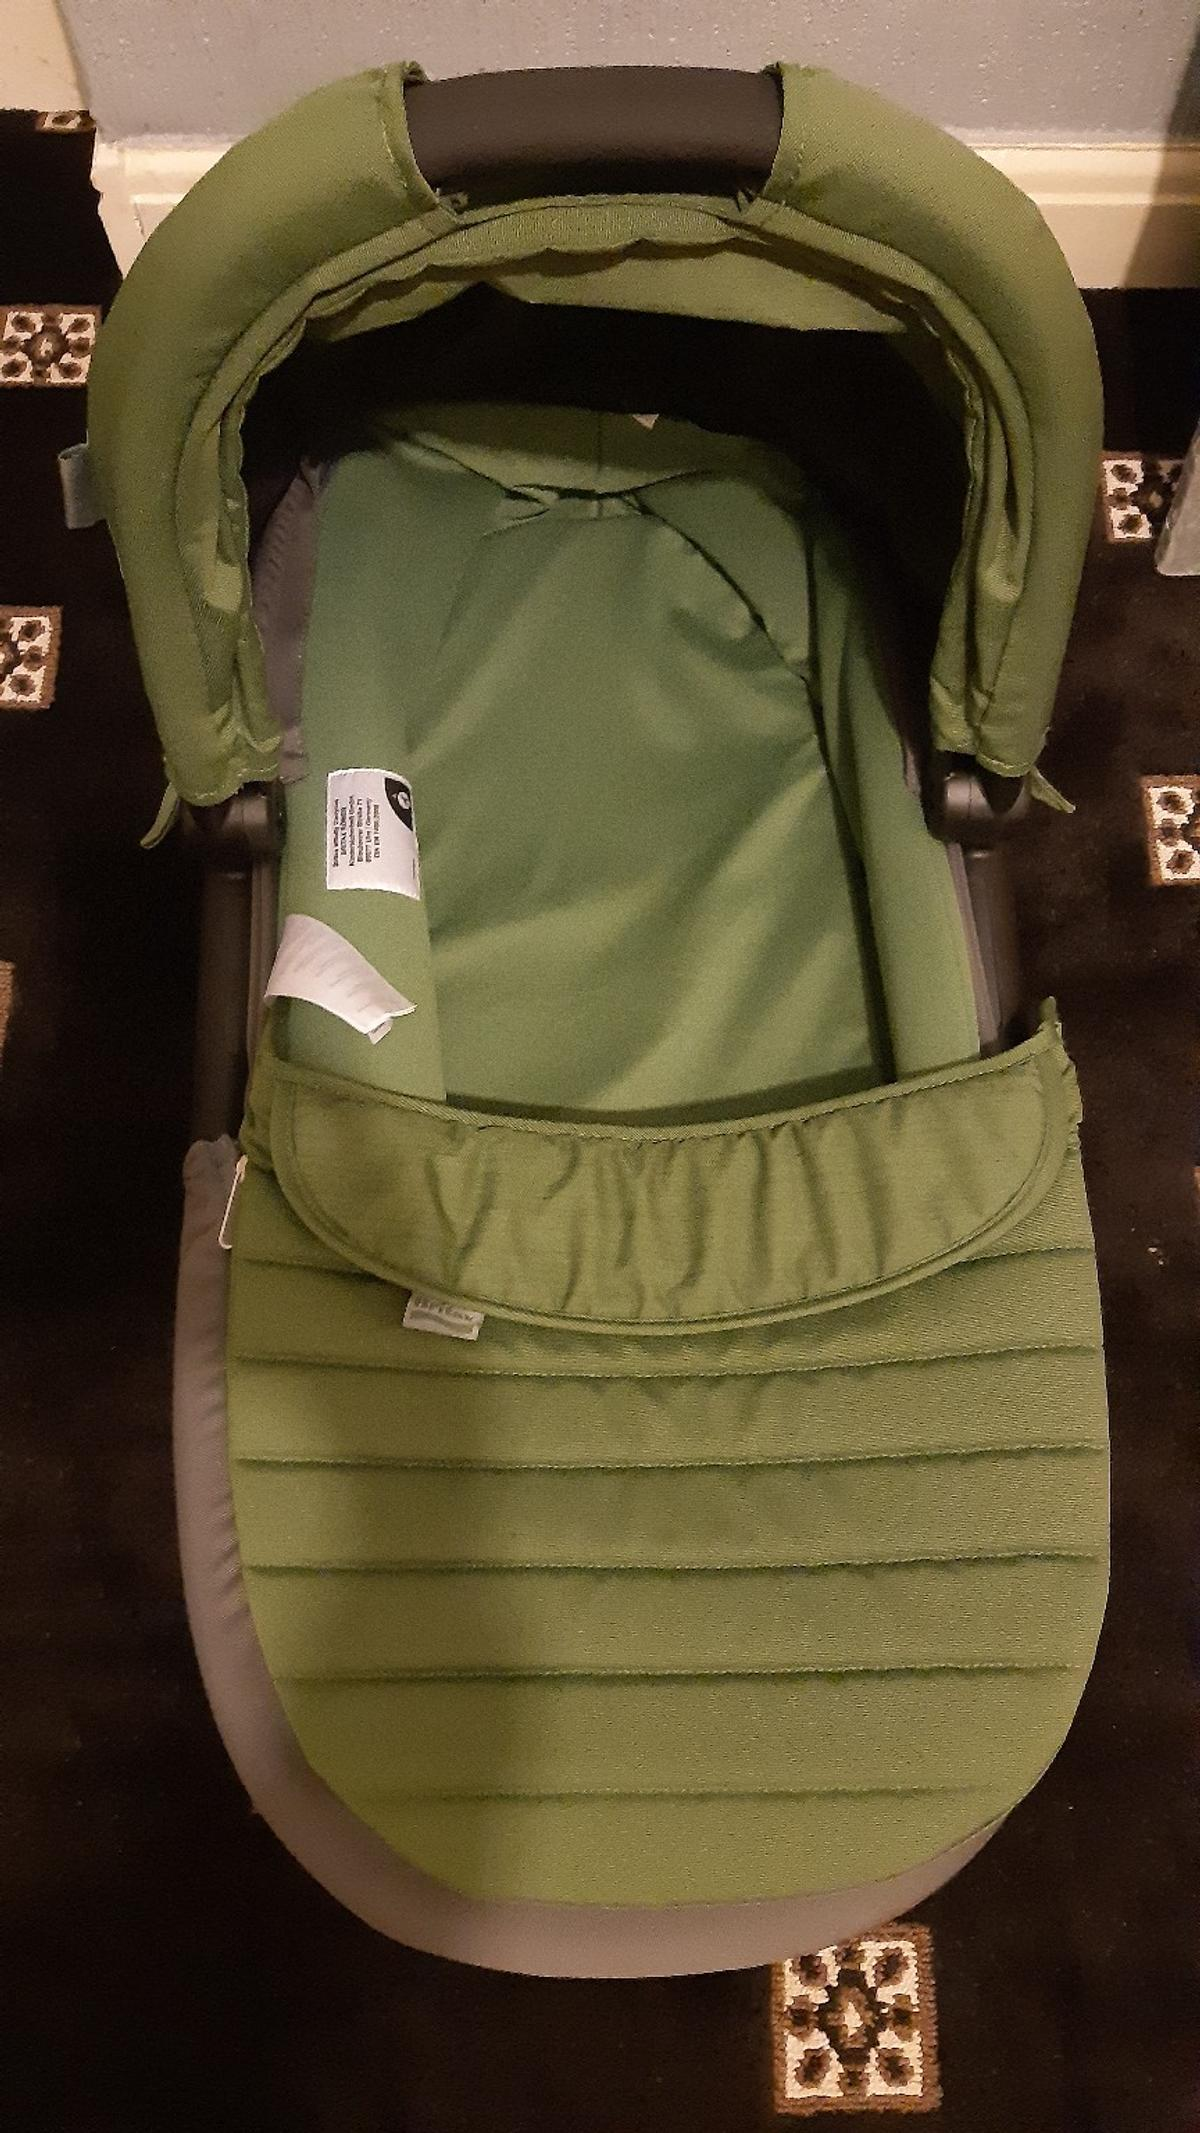 Britax Brand new baby carrycot green cactus colour make offers plz